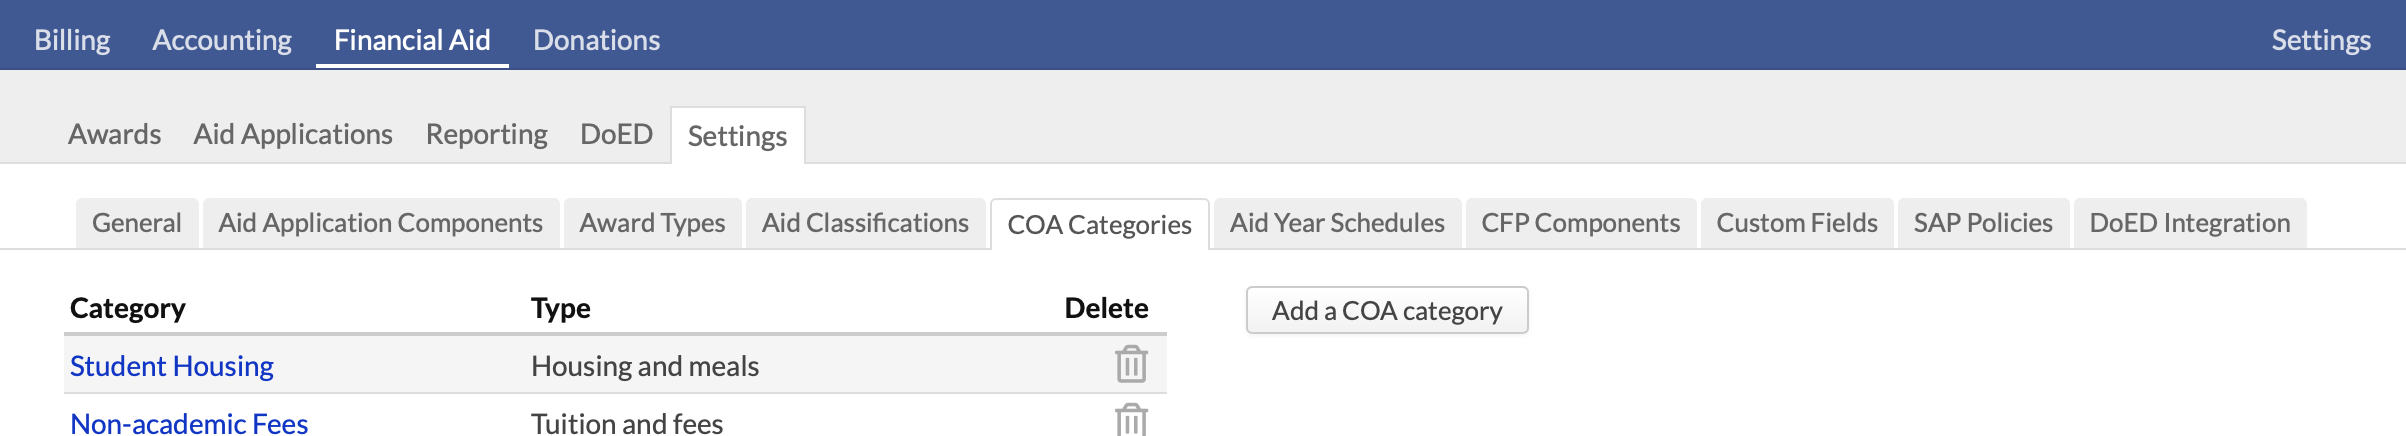 financial_aid_settings_coa_categories